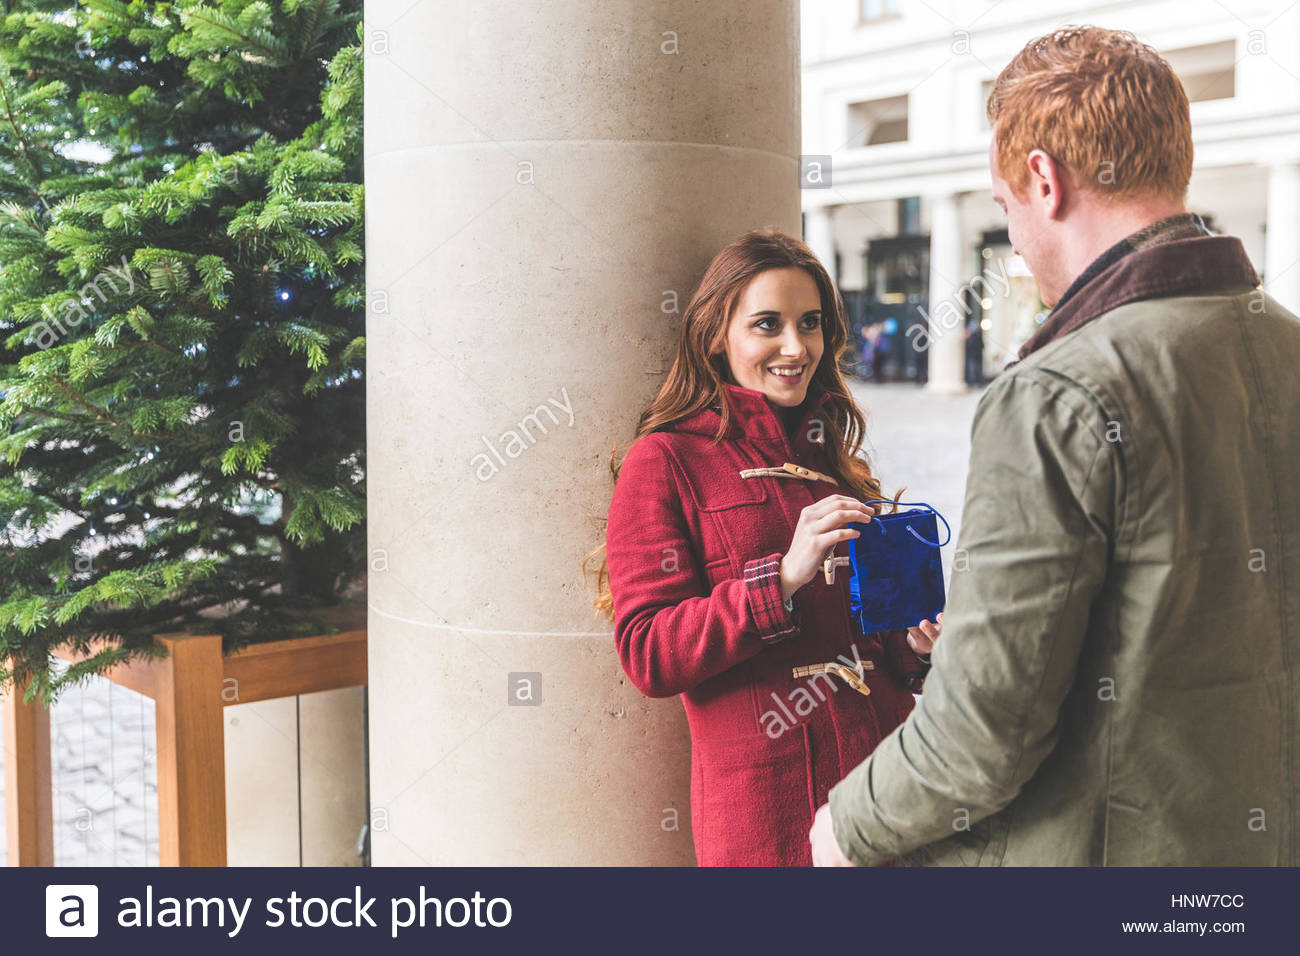 Man and woman chatting against column, Covent Garden, London, UK - Stock Image